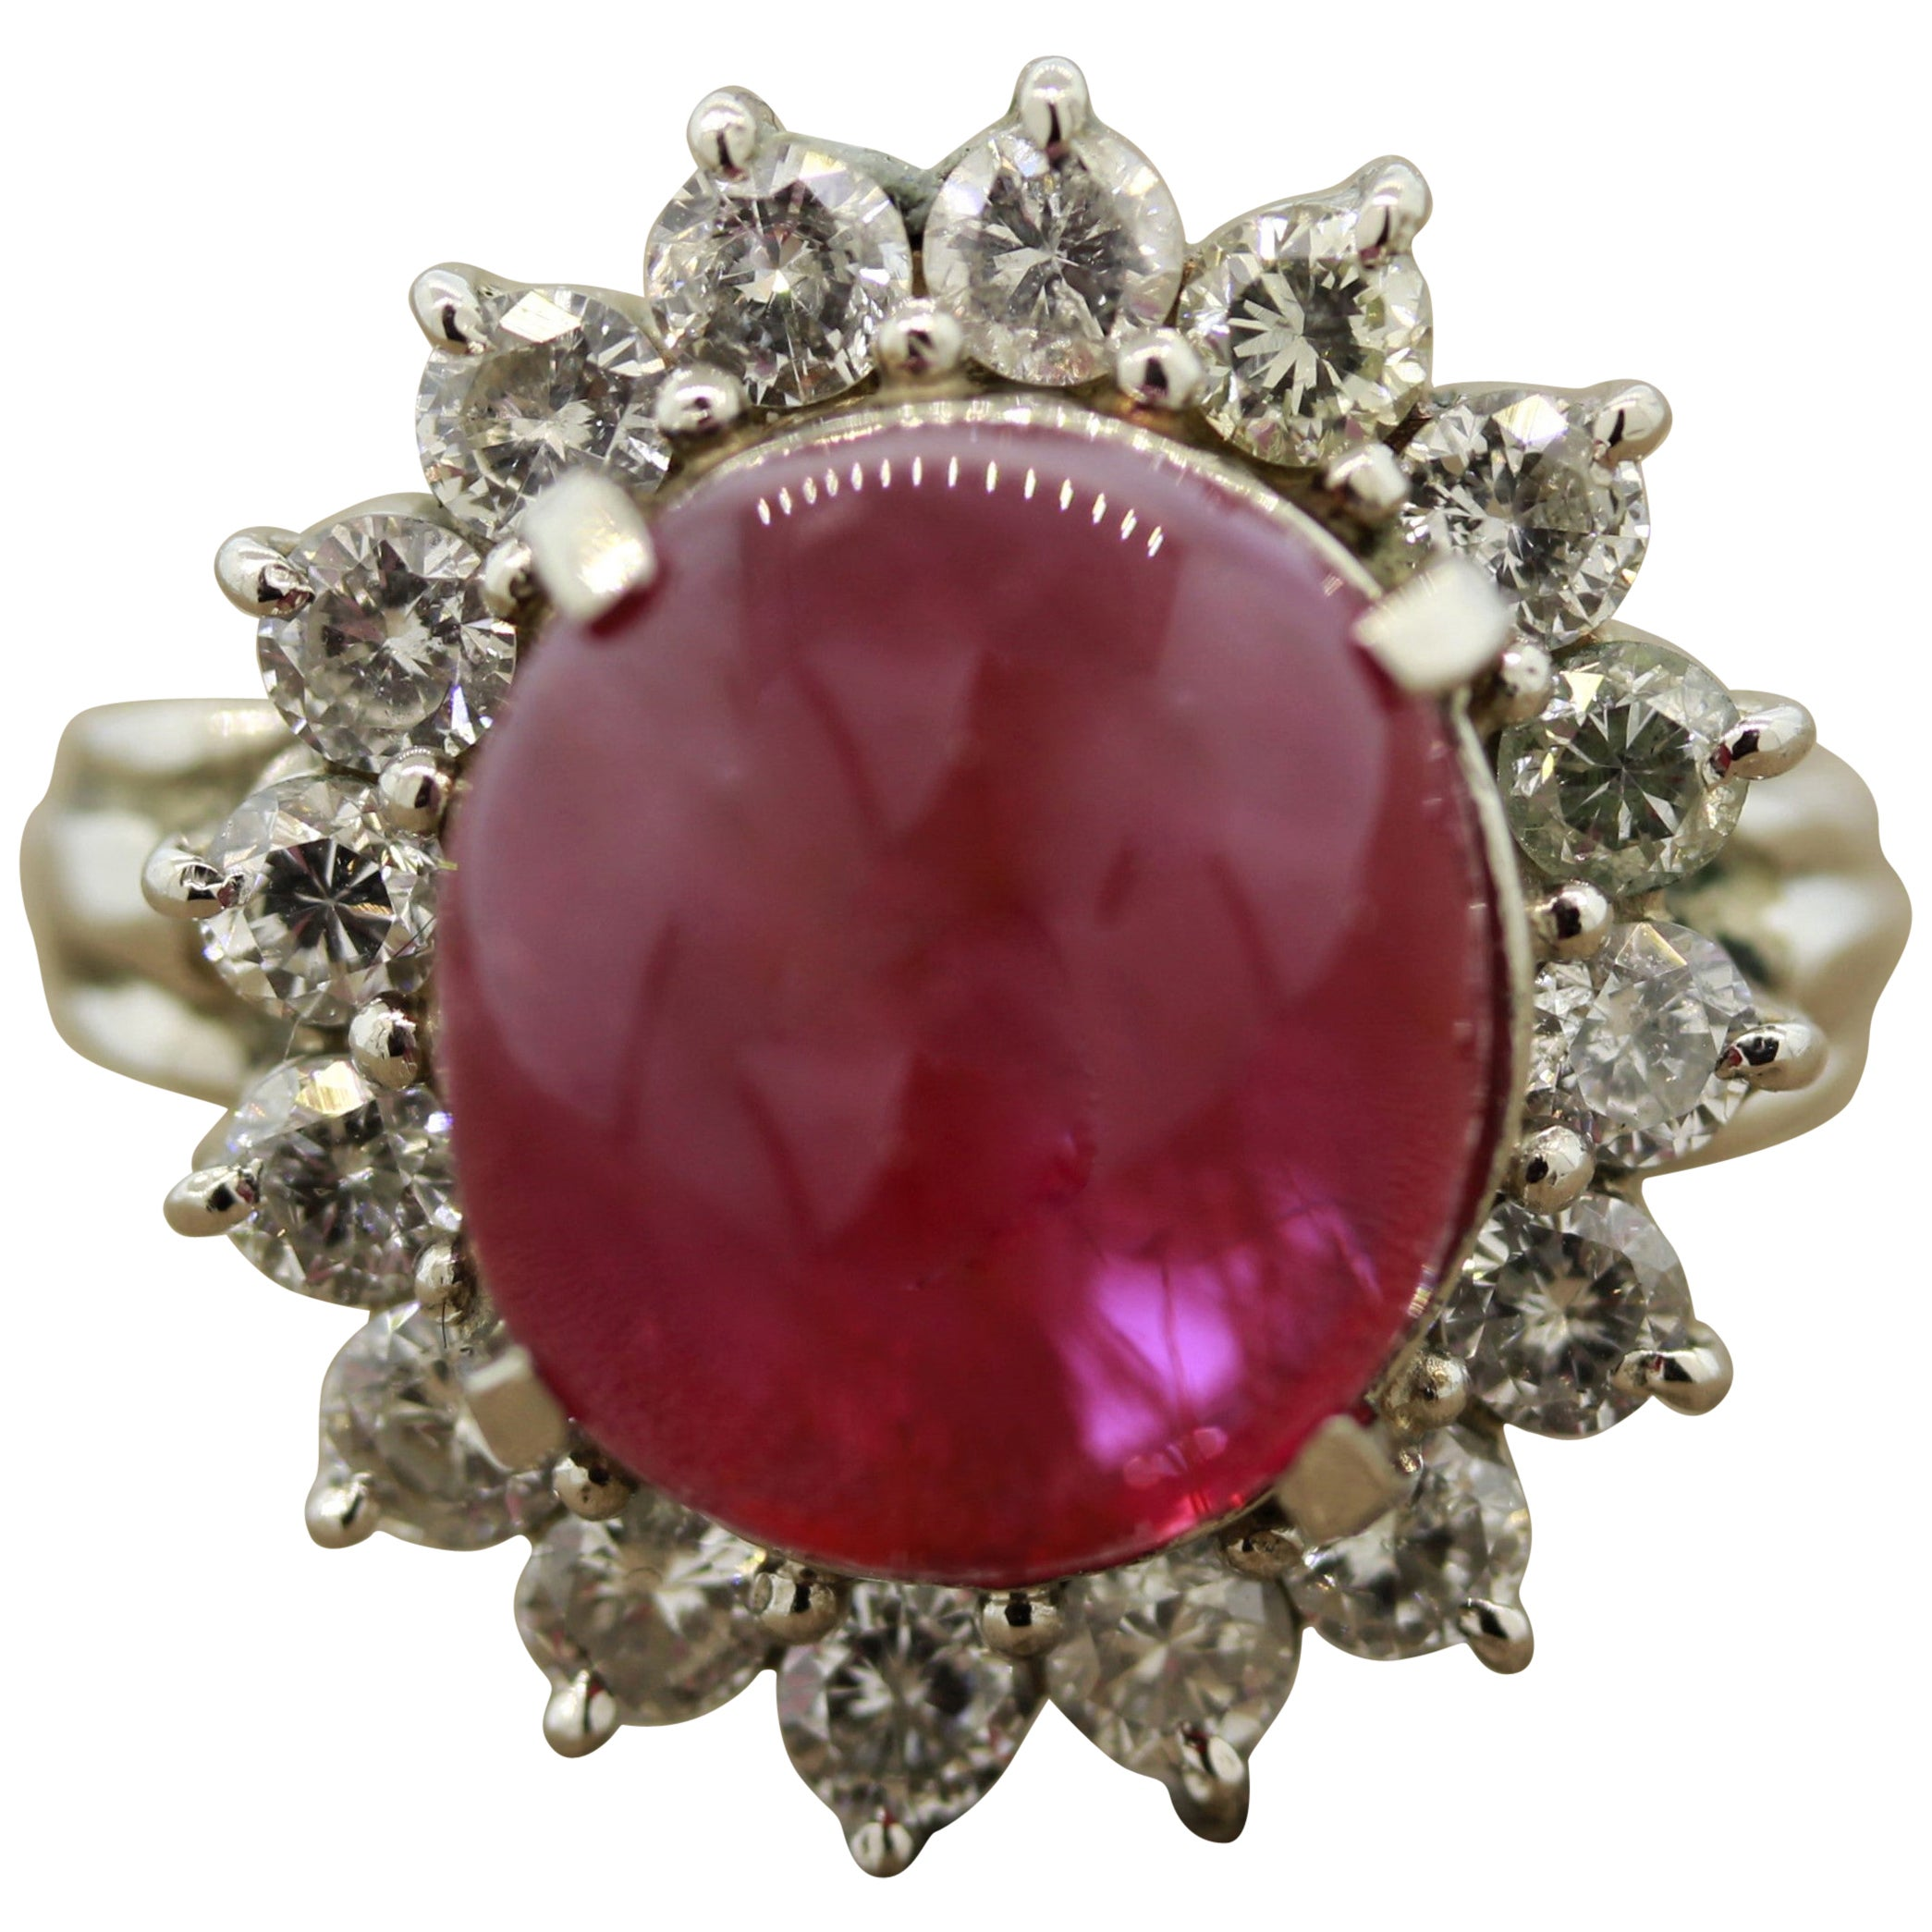 10.30 Carat Ruby Cabochon Diamond Platinum Ring, GIA Certified No-Heat